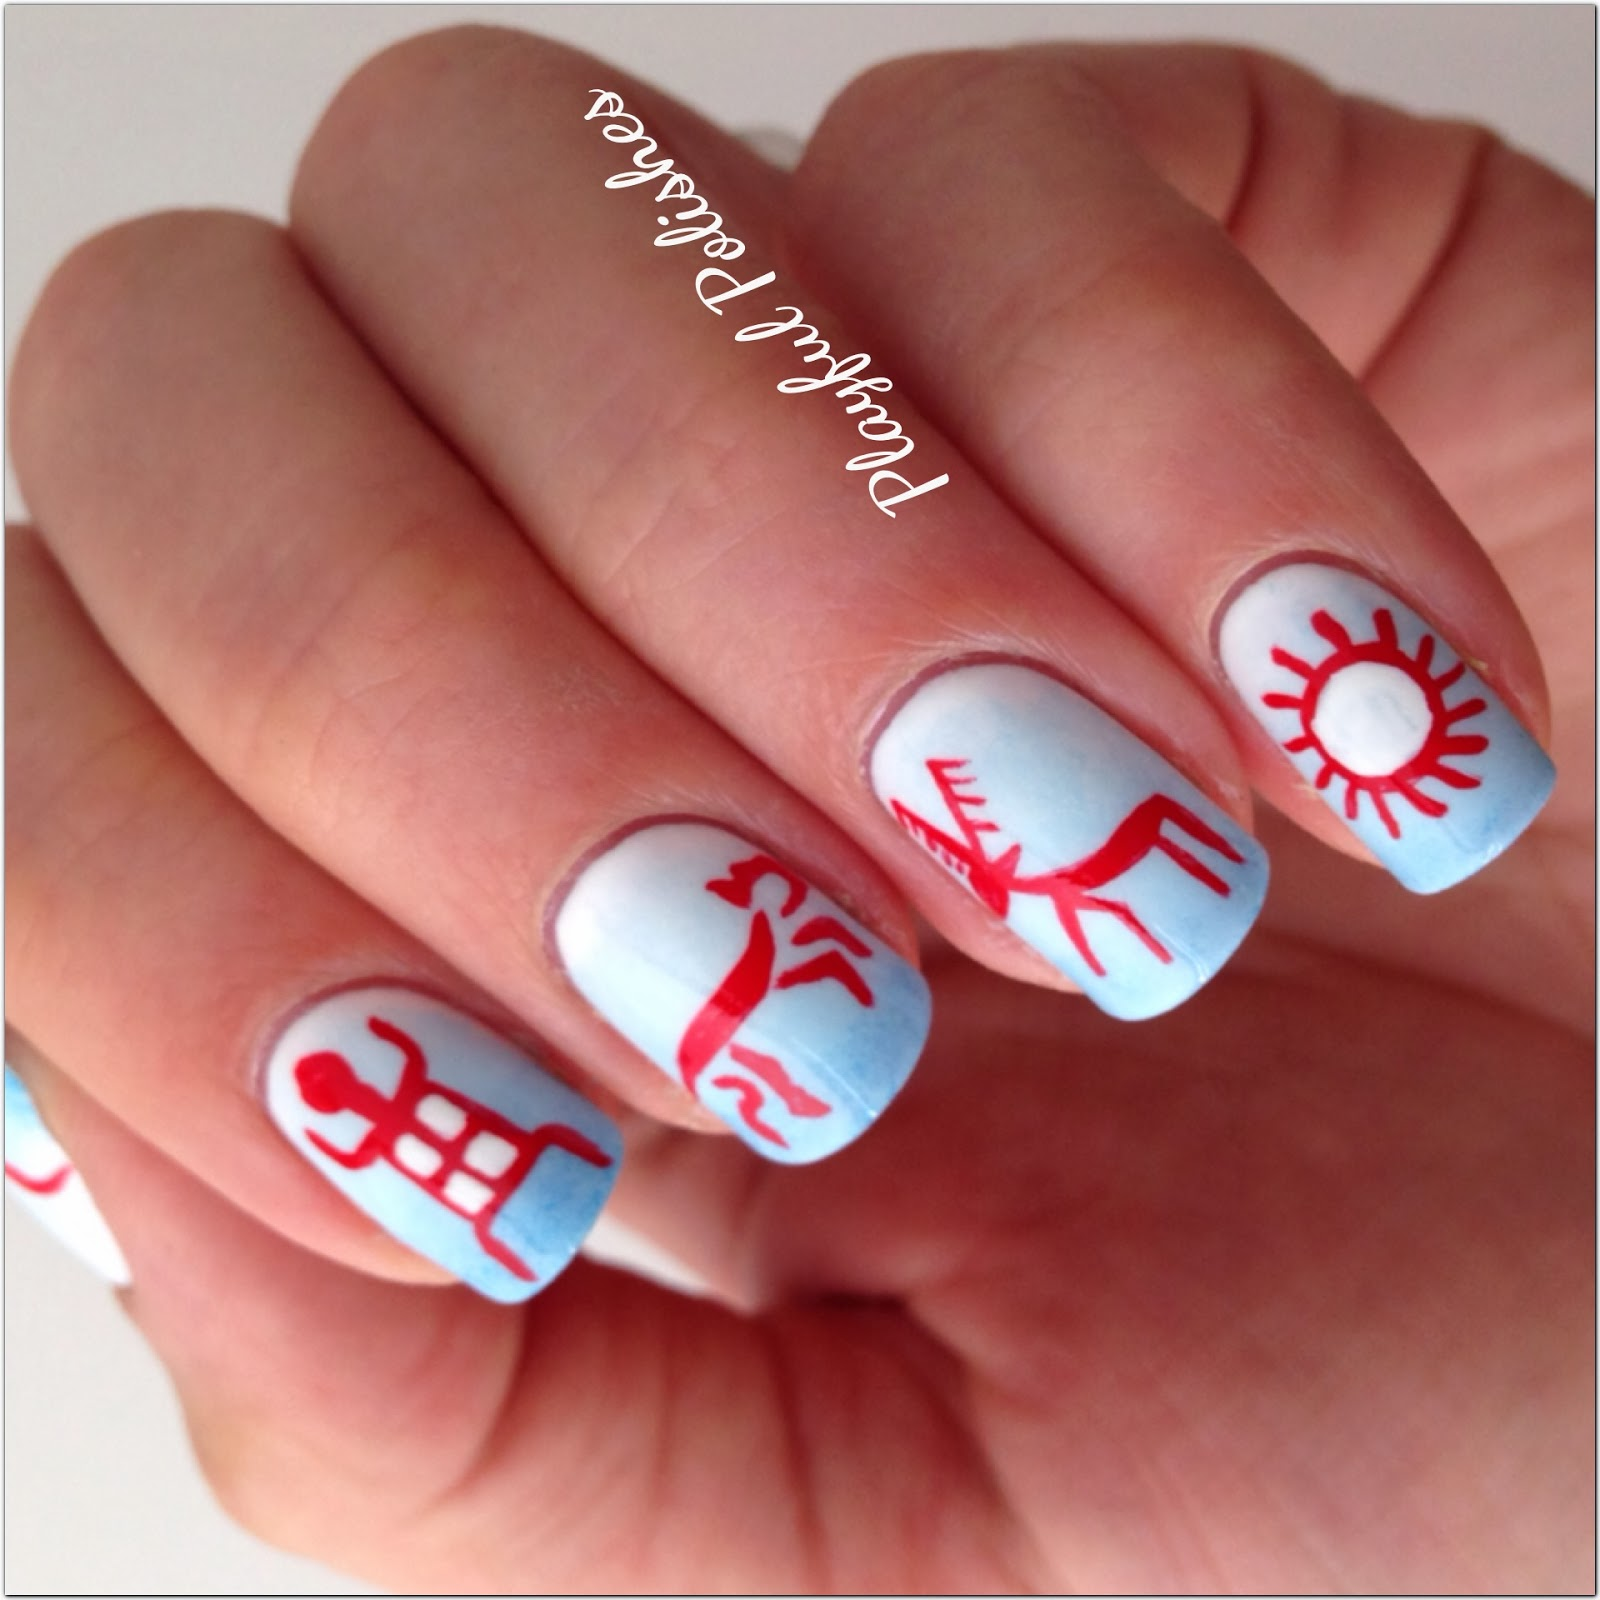 122 Nail Art Designs That You Won T Find On Google Images: Playful Polishes: 31 DAY NAIL ART CHALLENGE: INSPIRED BY A